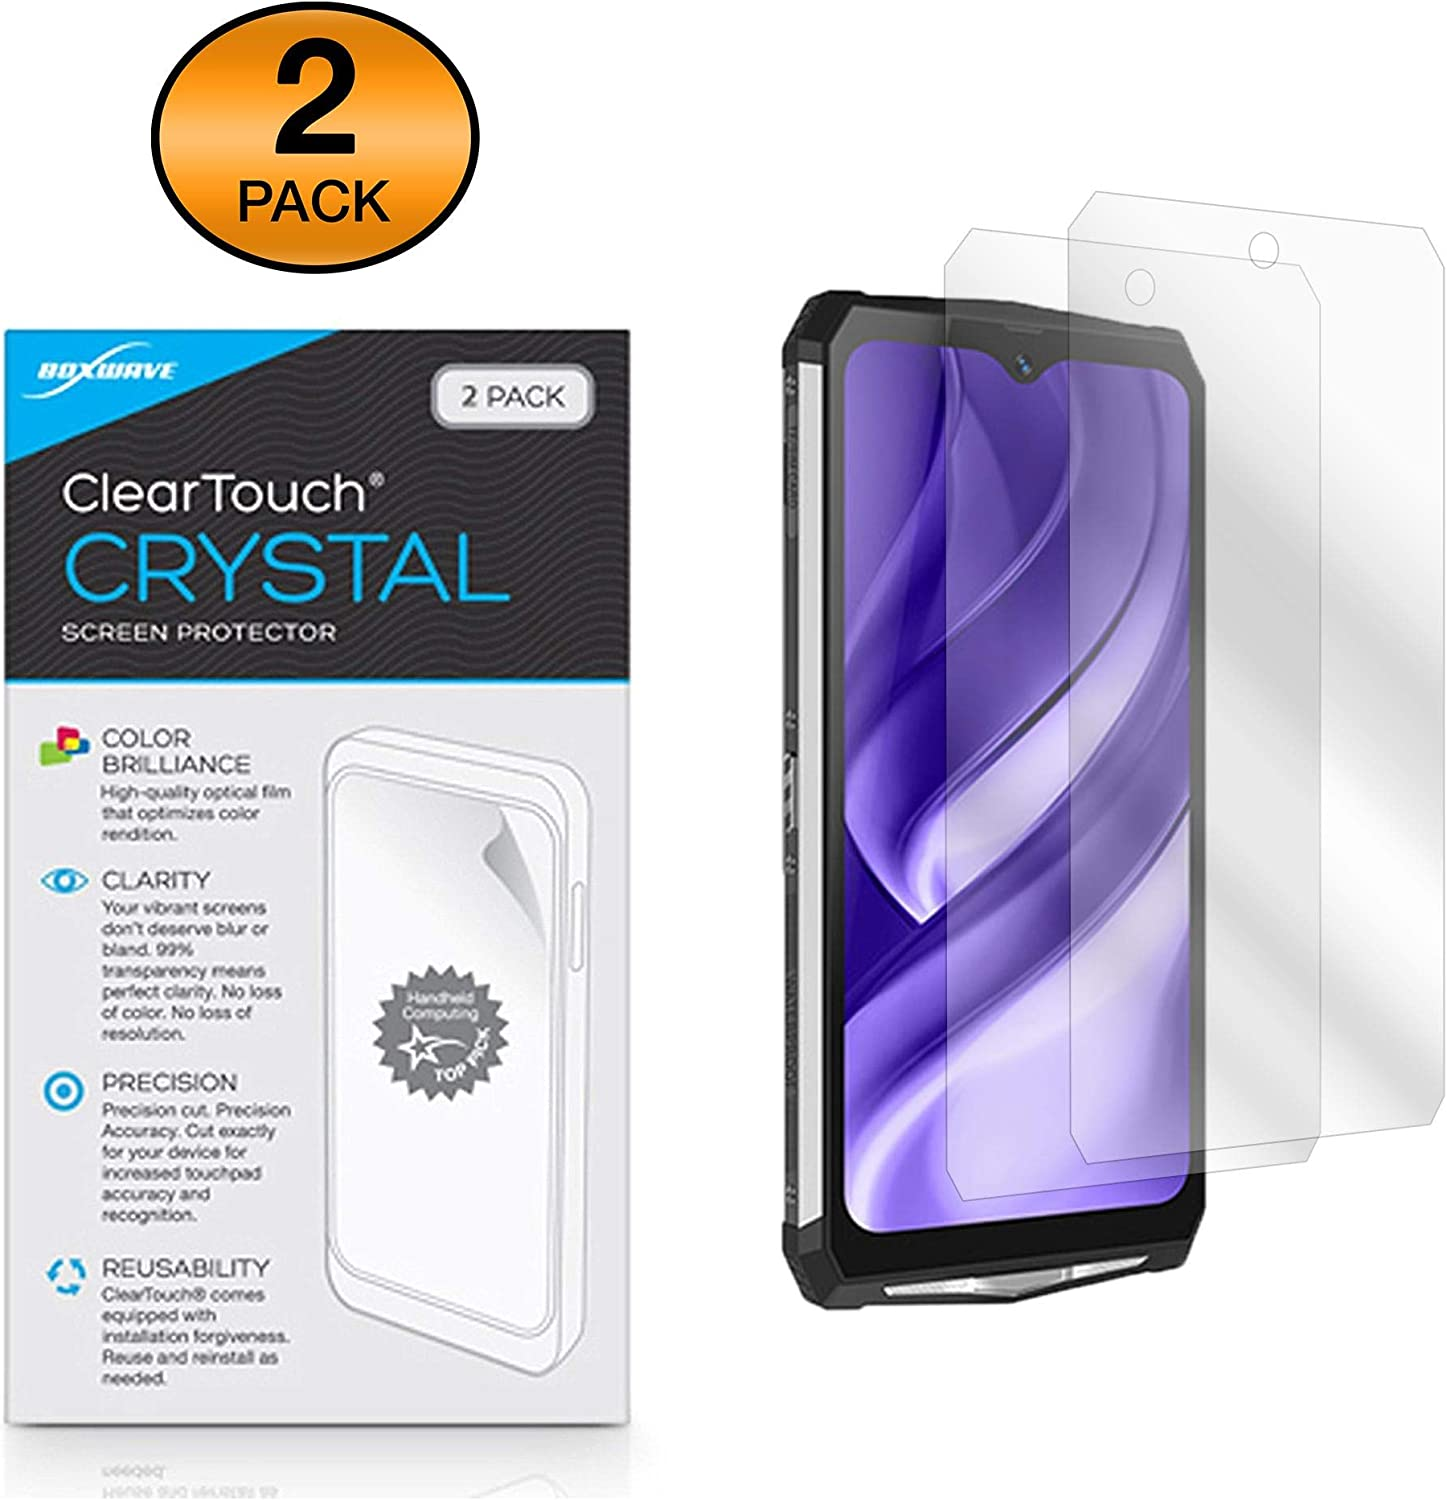 2-Pack Blackview BV9100 Screen Protector ClearTouch Crystal BoxWave Shields from Scratches for Blackview BV9100 HD Film Skin